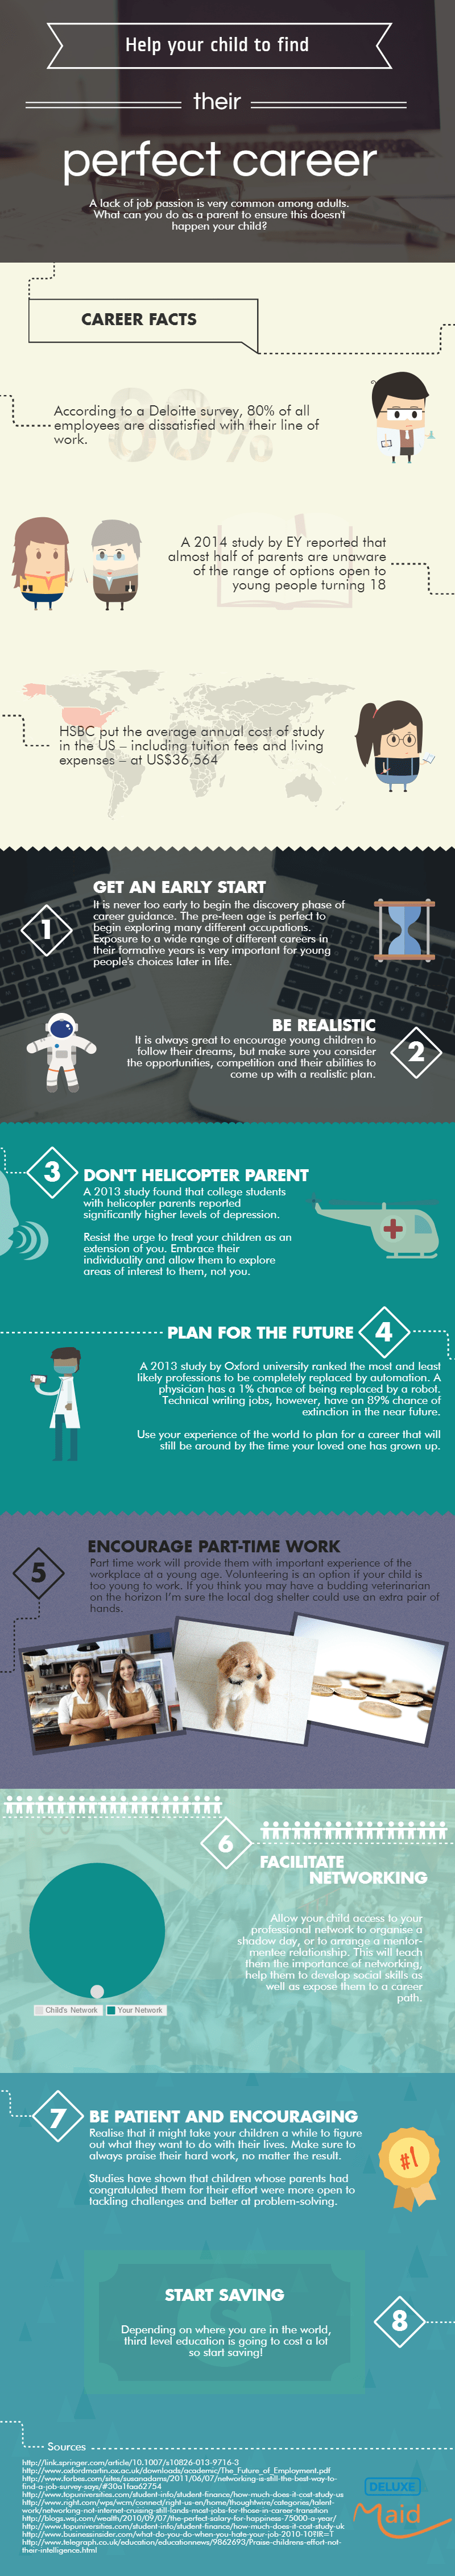 Help your child with their career choices infographic